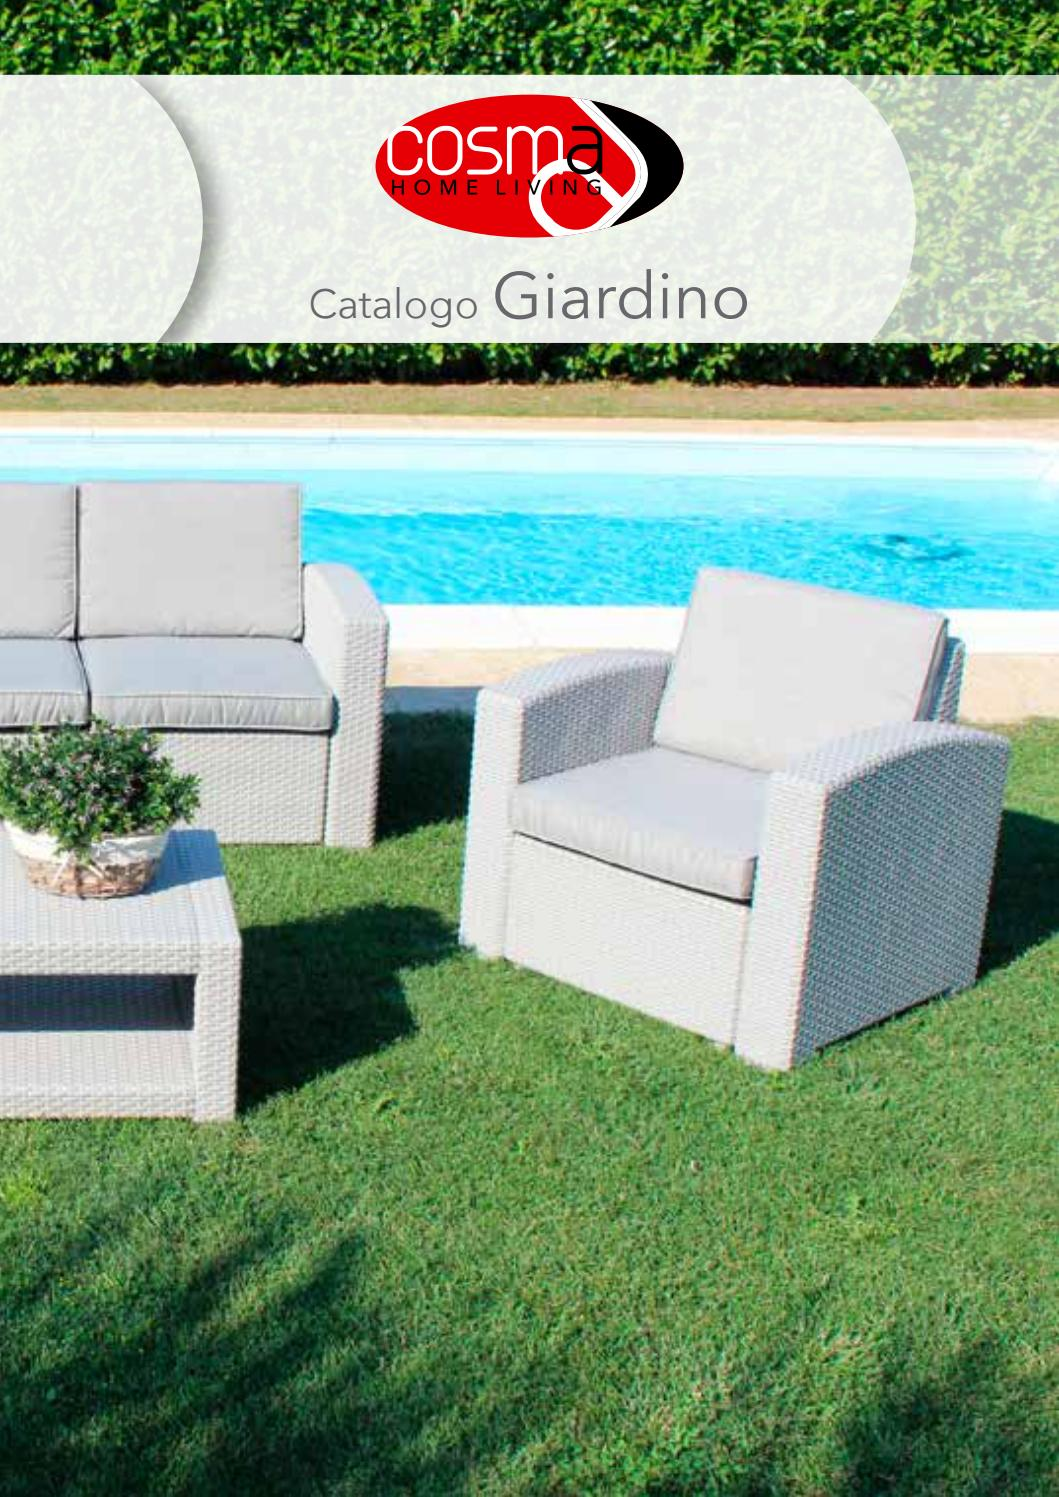 Catalogo 2017 giardino by cosma center sas issuu for Catalogo giardino